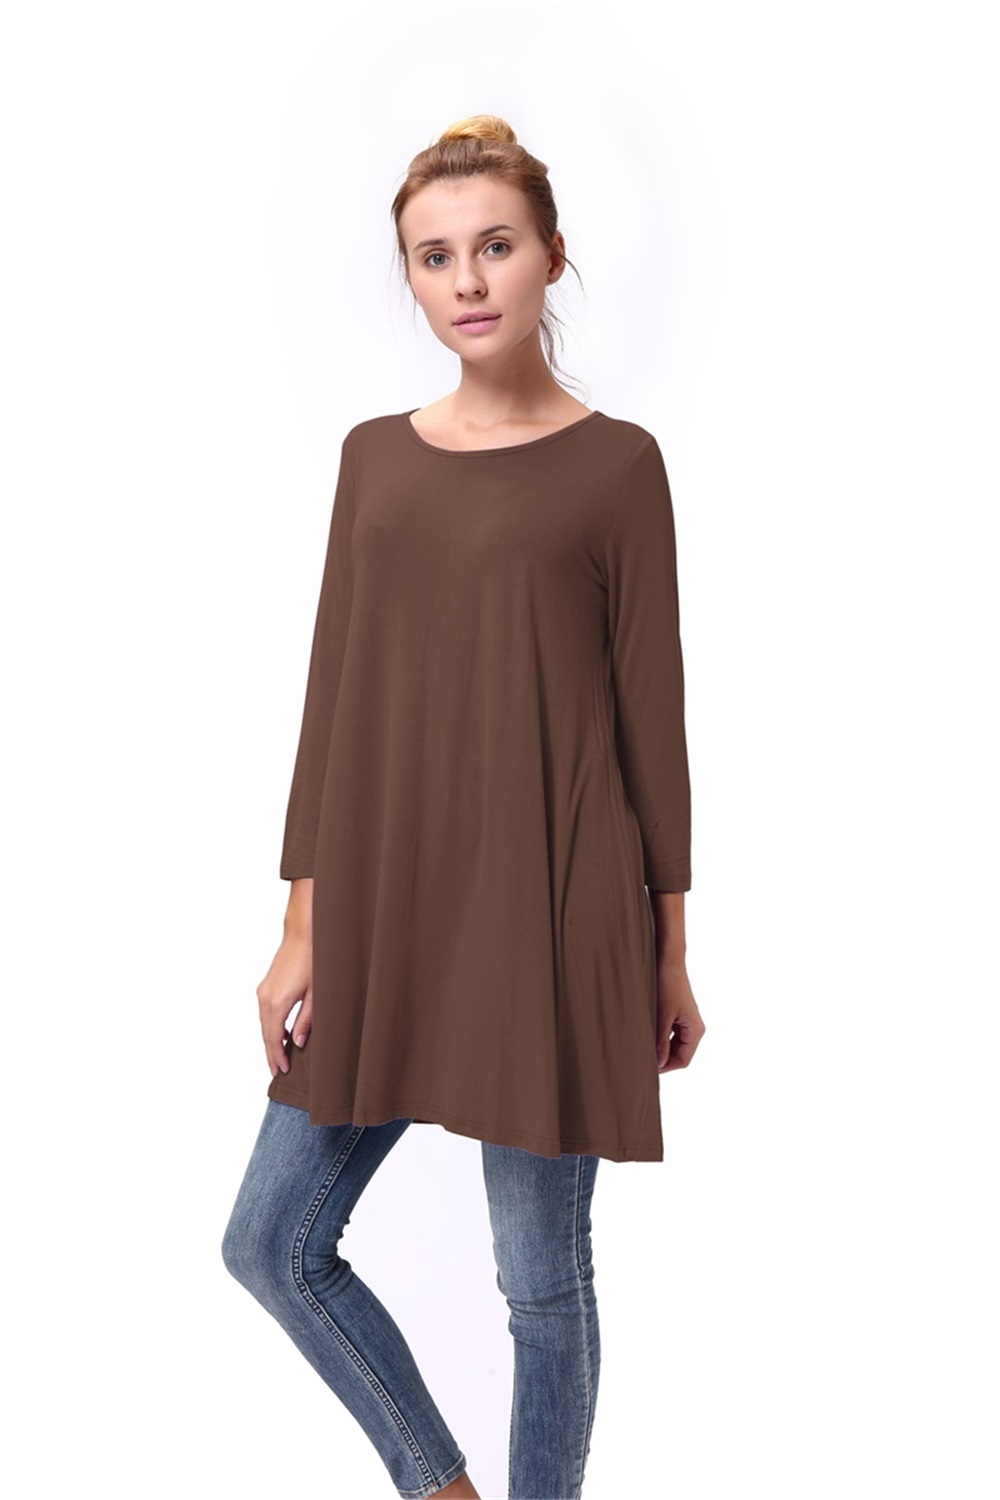 Women-Casual-Round-Neck-3-4-Long-Sleeve-Trapeze-Tunic-Top-Lady-Loose-Fit-Dress thumbnail 20